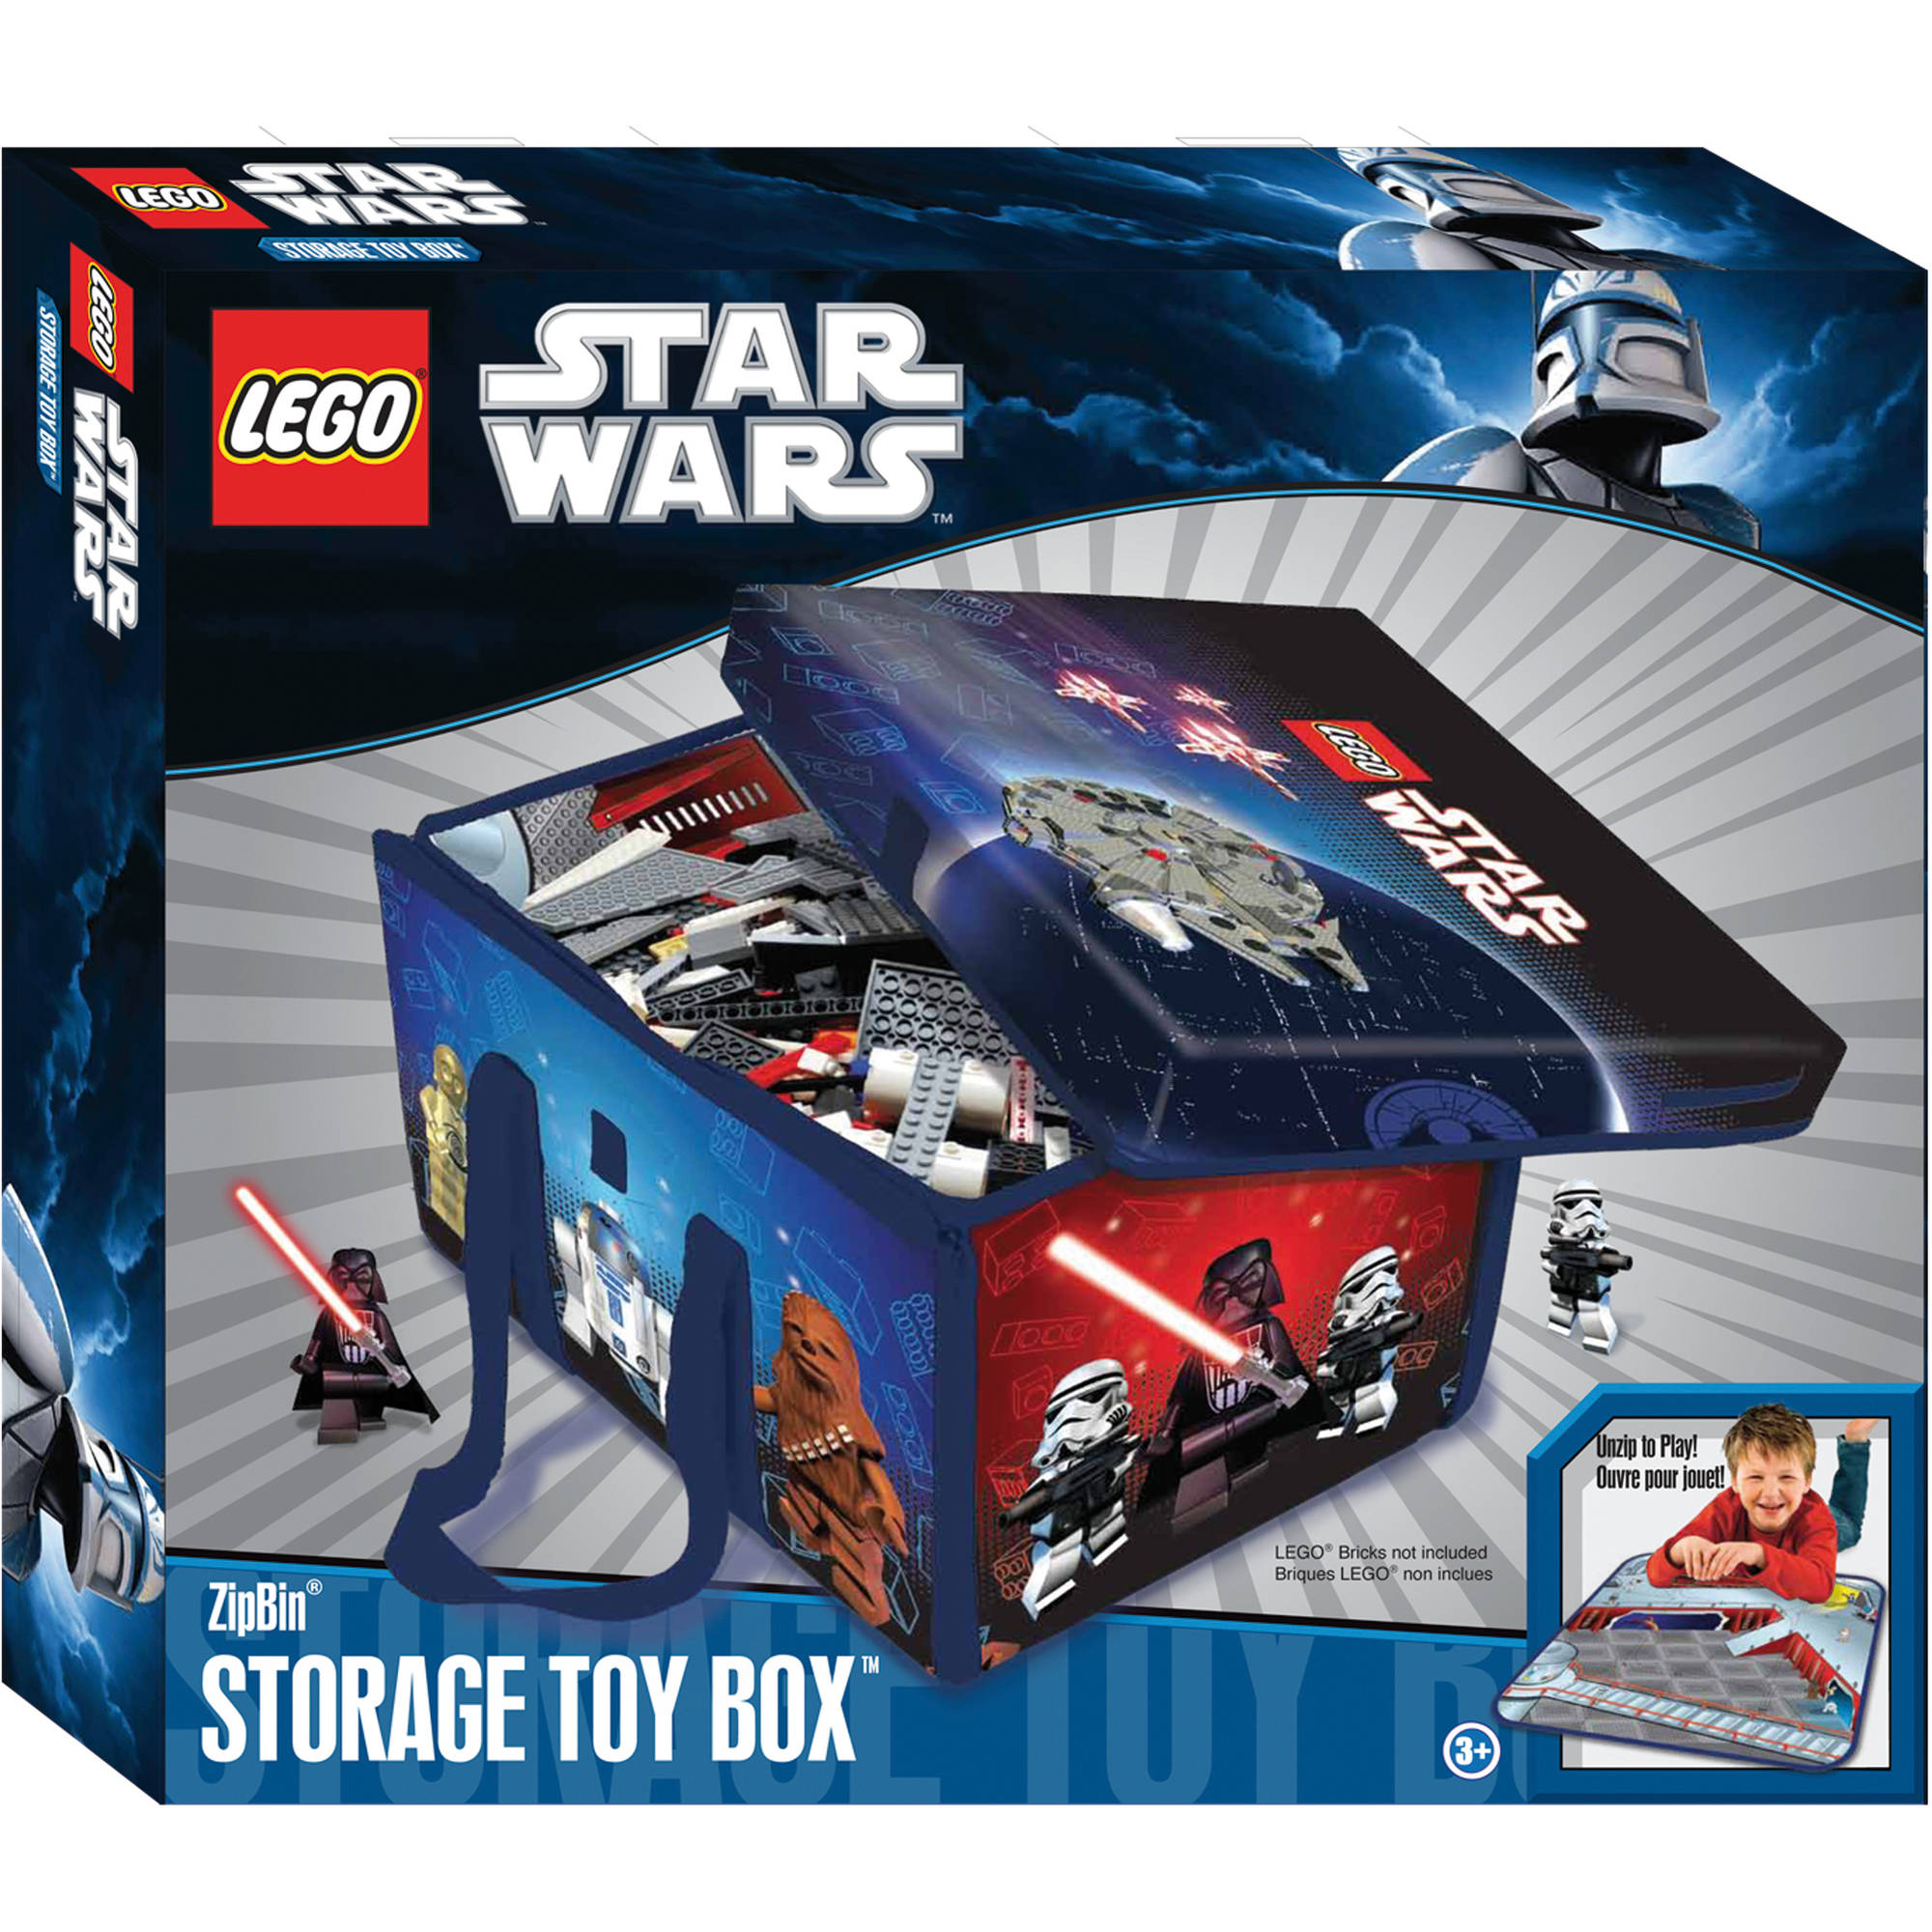 Star Wars LEGO ZipBin Storage Toy Box   Walmart.com